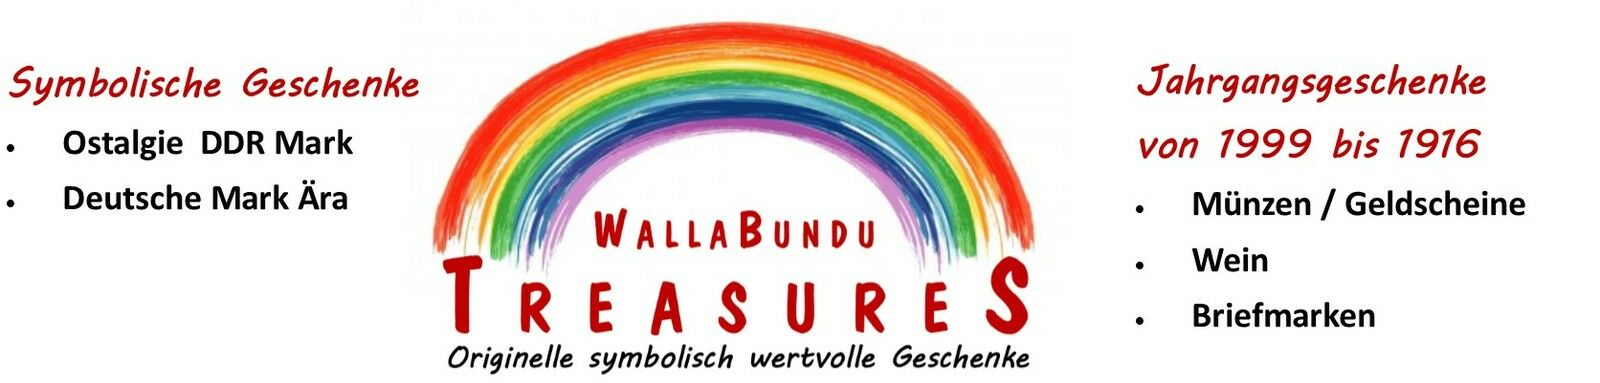 Walla Bundu Treasures